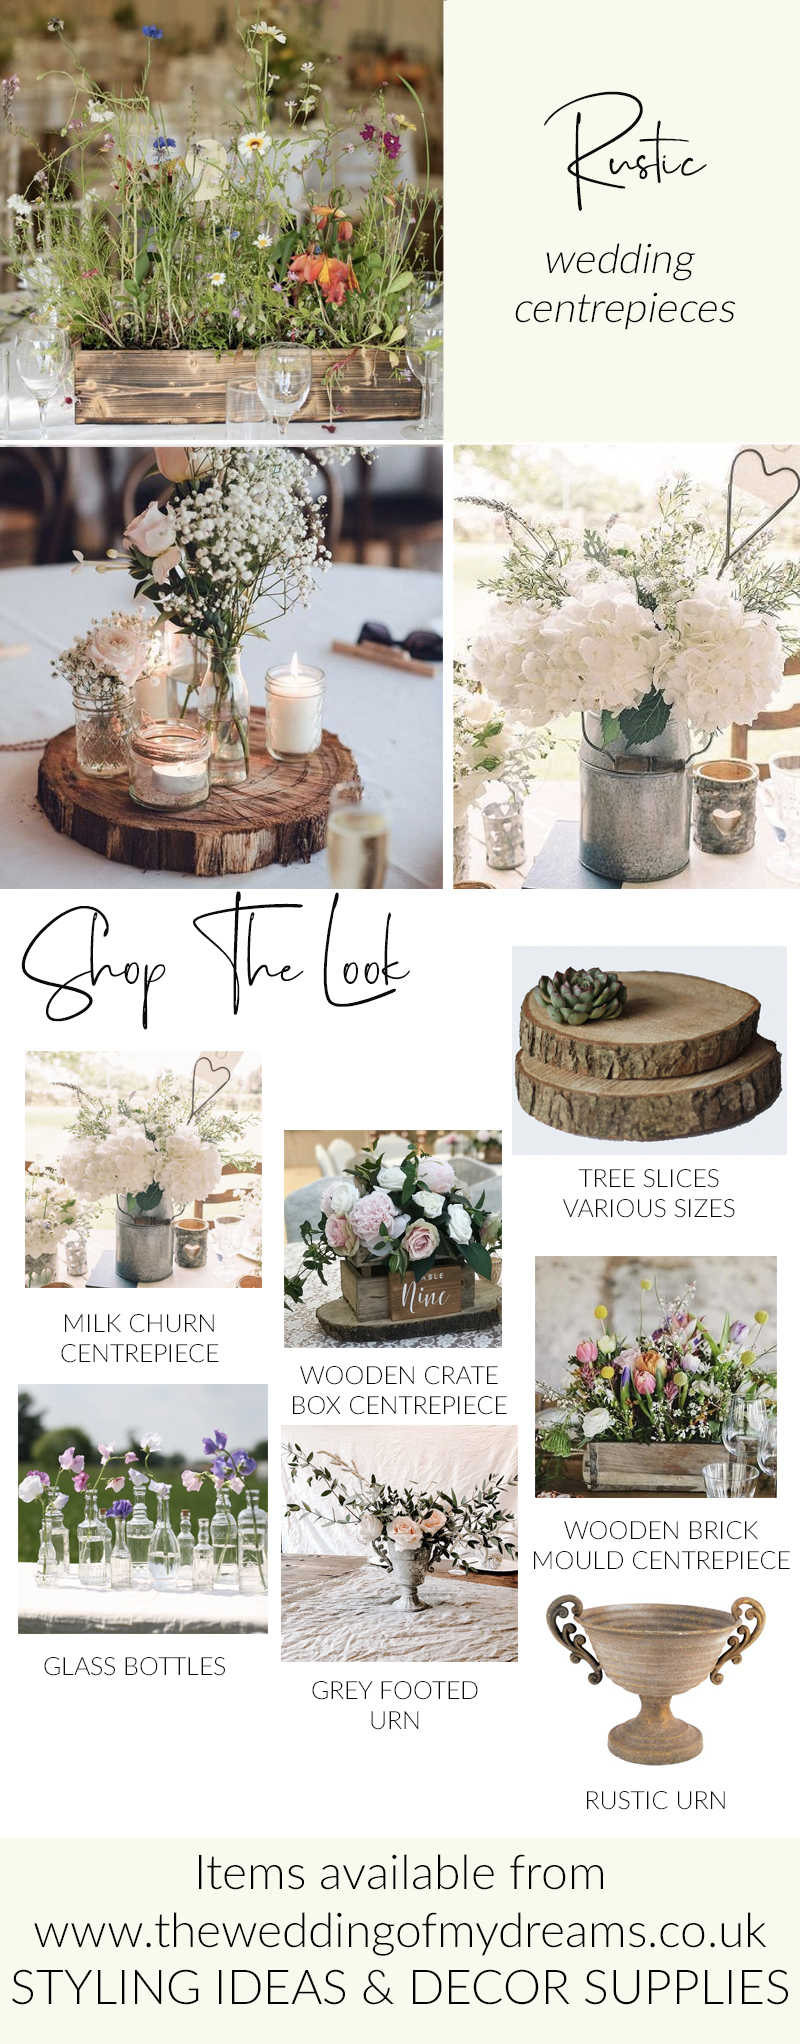 Rustic wedding centrepieces milk churns urns wood slices stumps bottles The Wedding of my Dreams V2